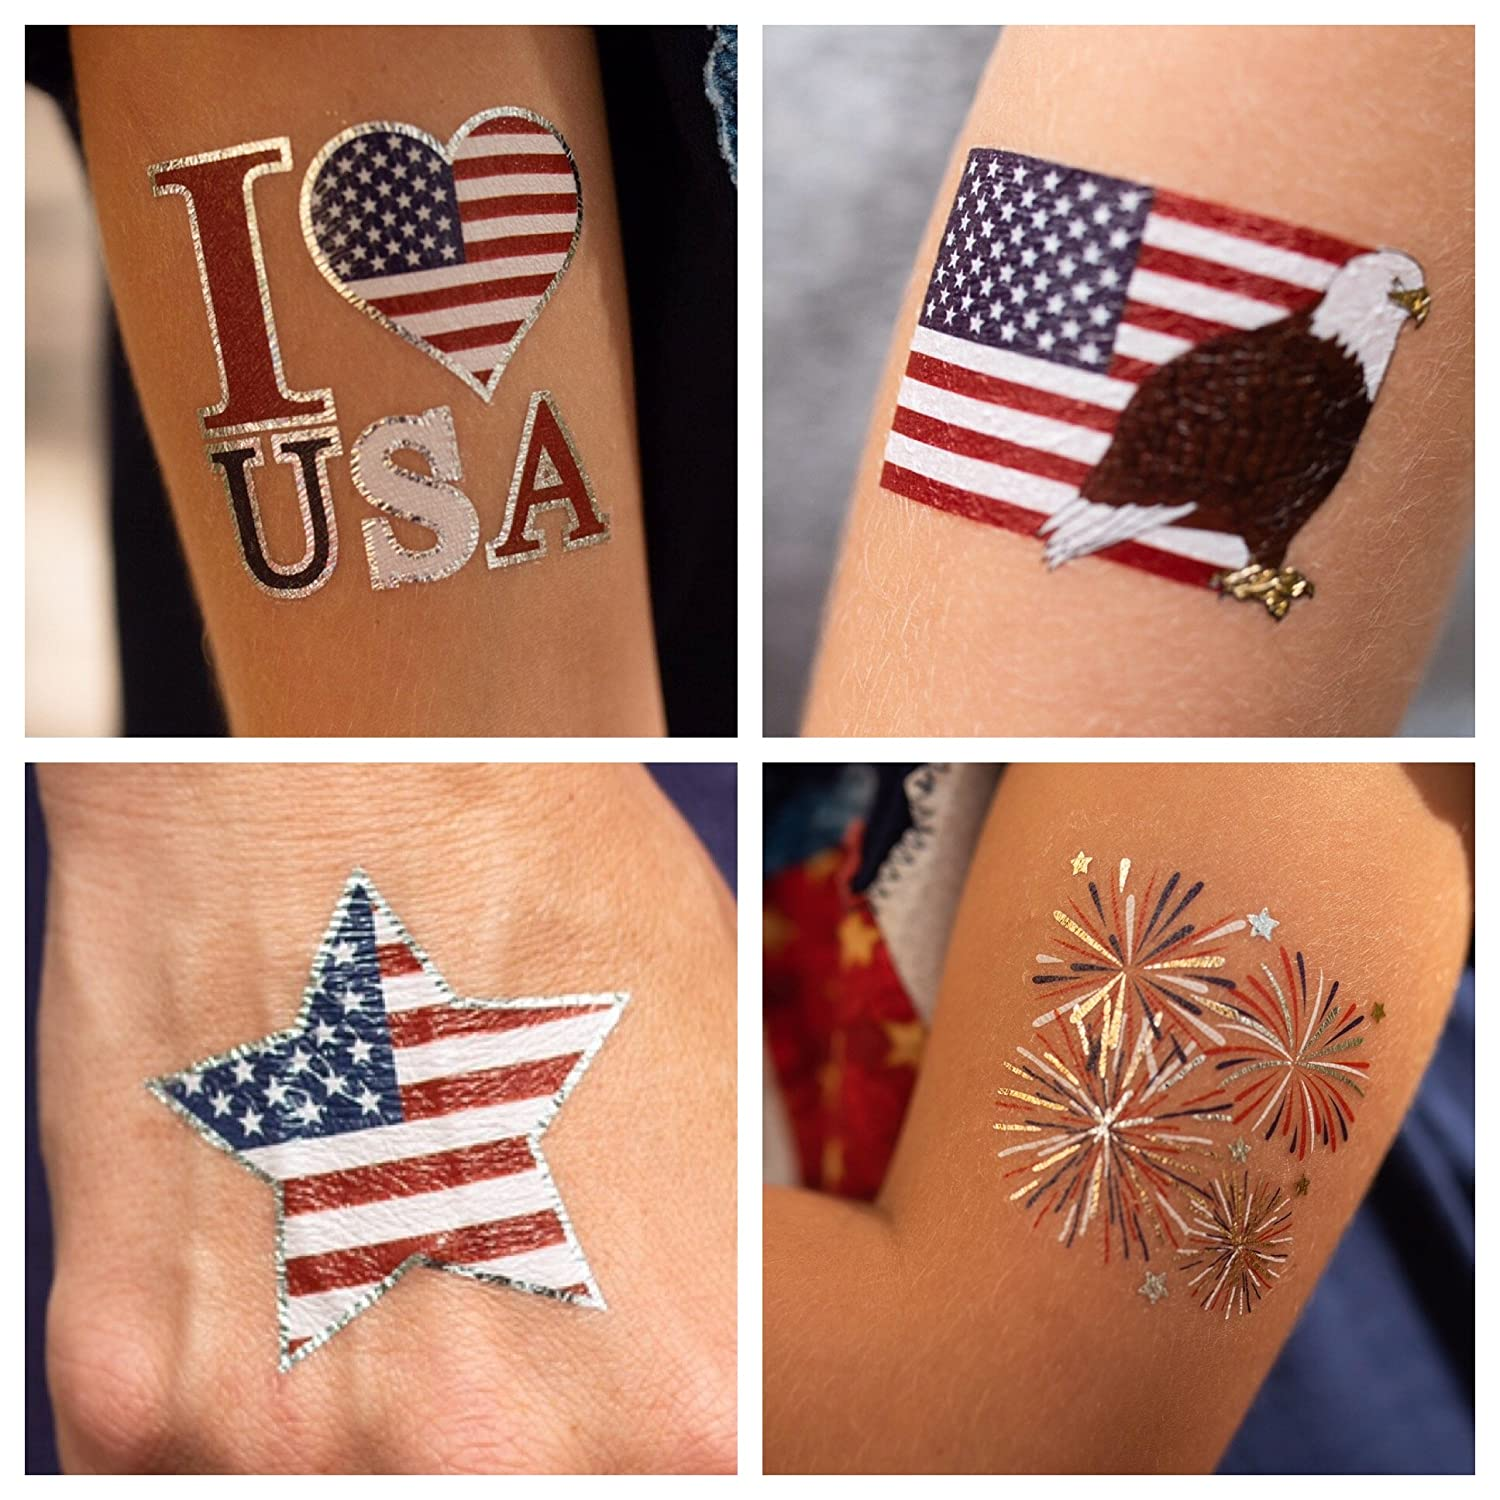 24 Patriotic Temporary Tattoos Best for 4th of July Party Supplies, USA Party Favors and Fourth of July Party Decorations - Metallic American Flag Red White and Blue Fake Tattoos for The Whole Family